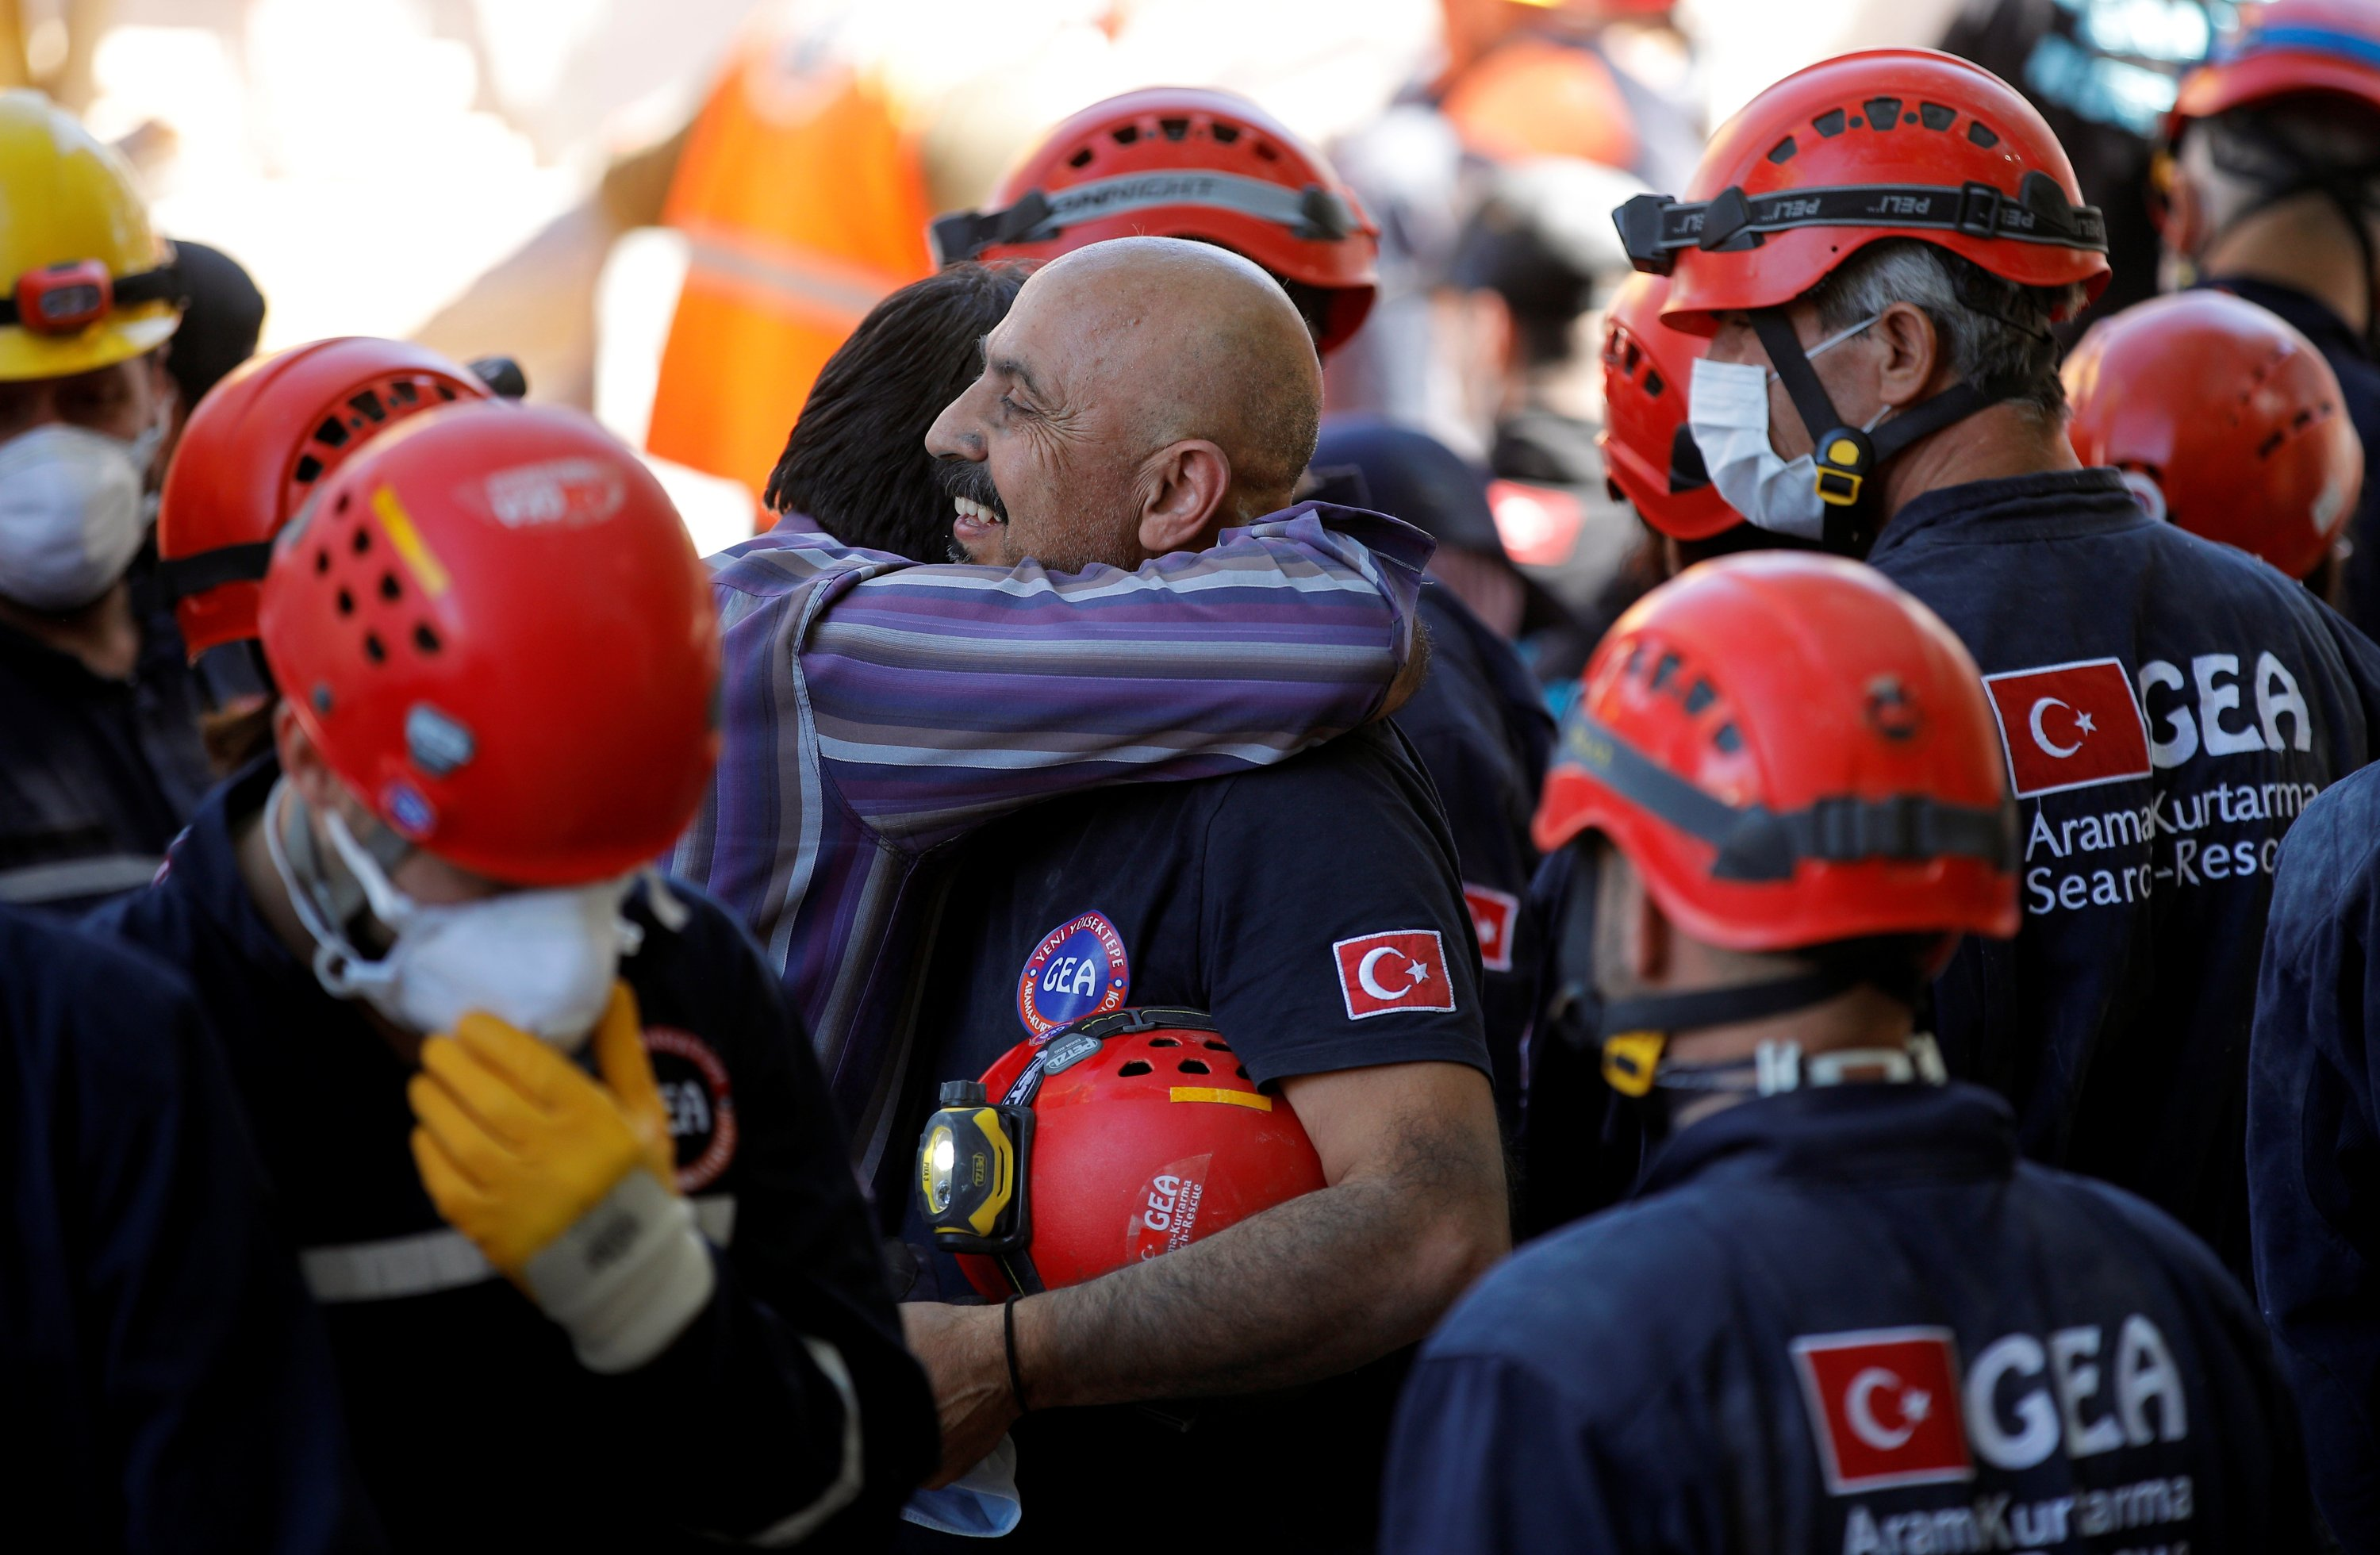 A survivor hugs rescue personnel after learning his family was pulled out alive from under the debris, in Izmir, Turkey, Oct. 31. (Reuters Photo)